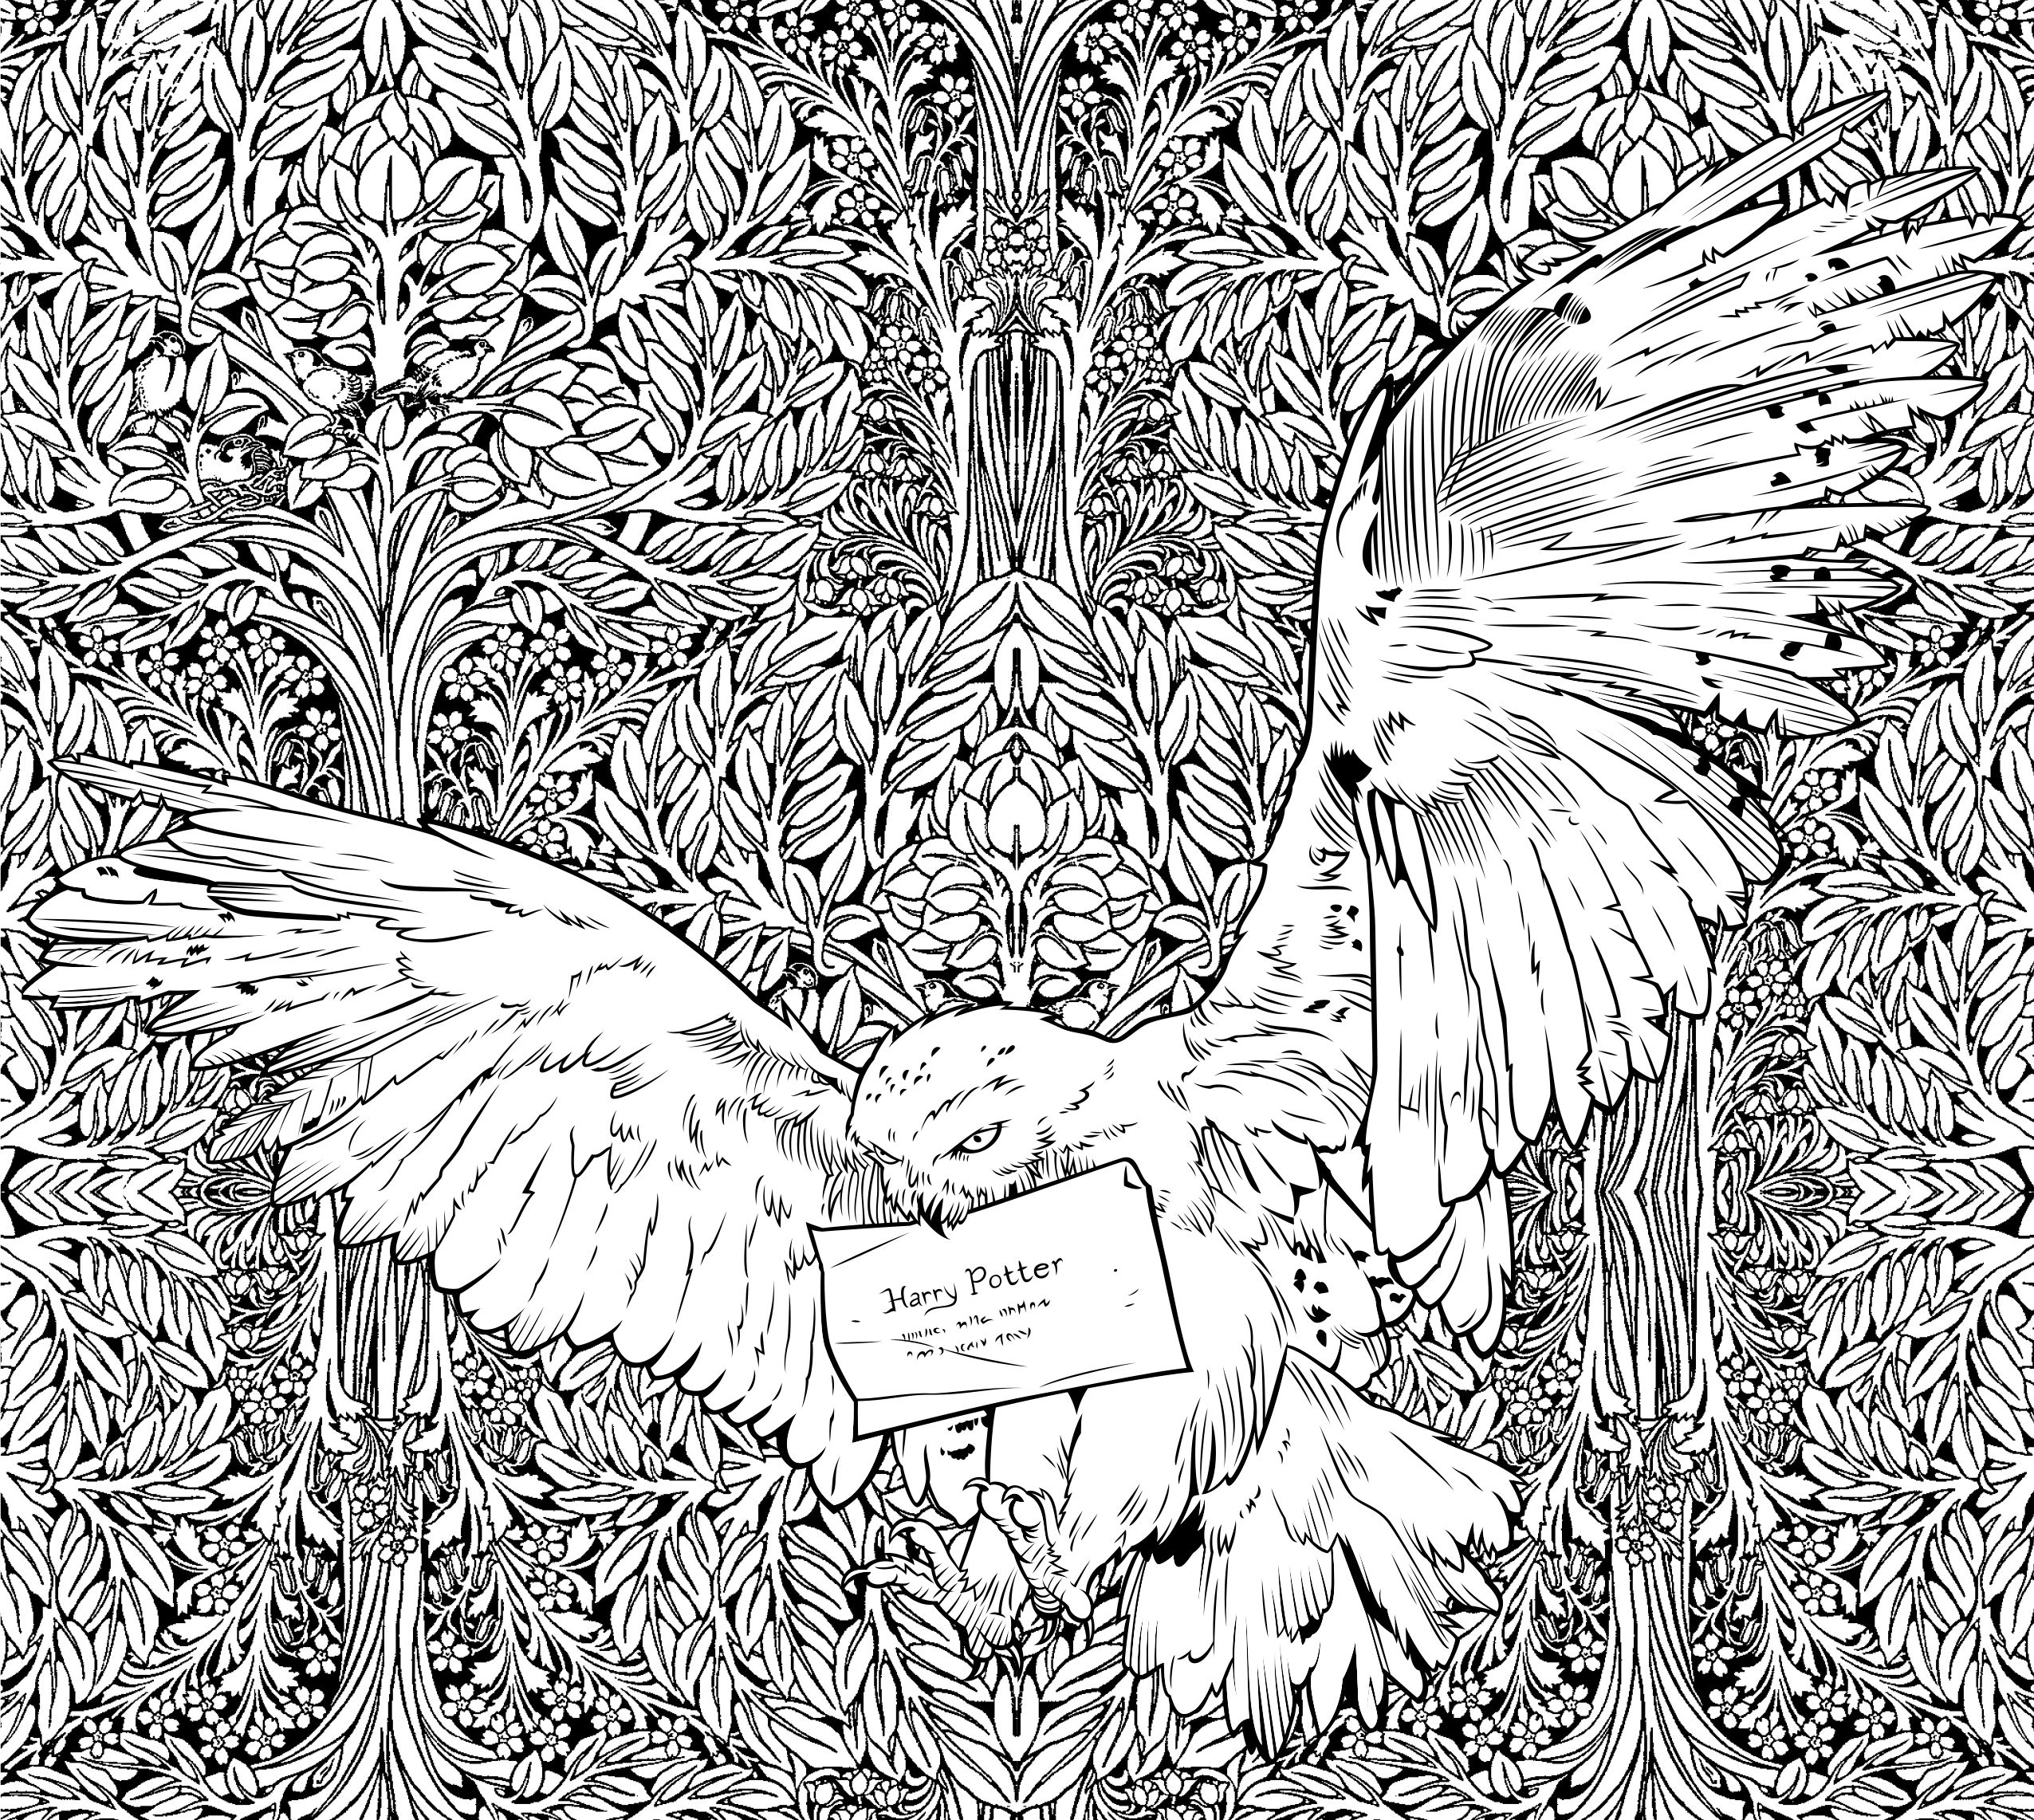 Awesome harry potter coloring pages for adults collection harry potter adult coloring pages